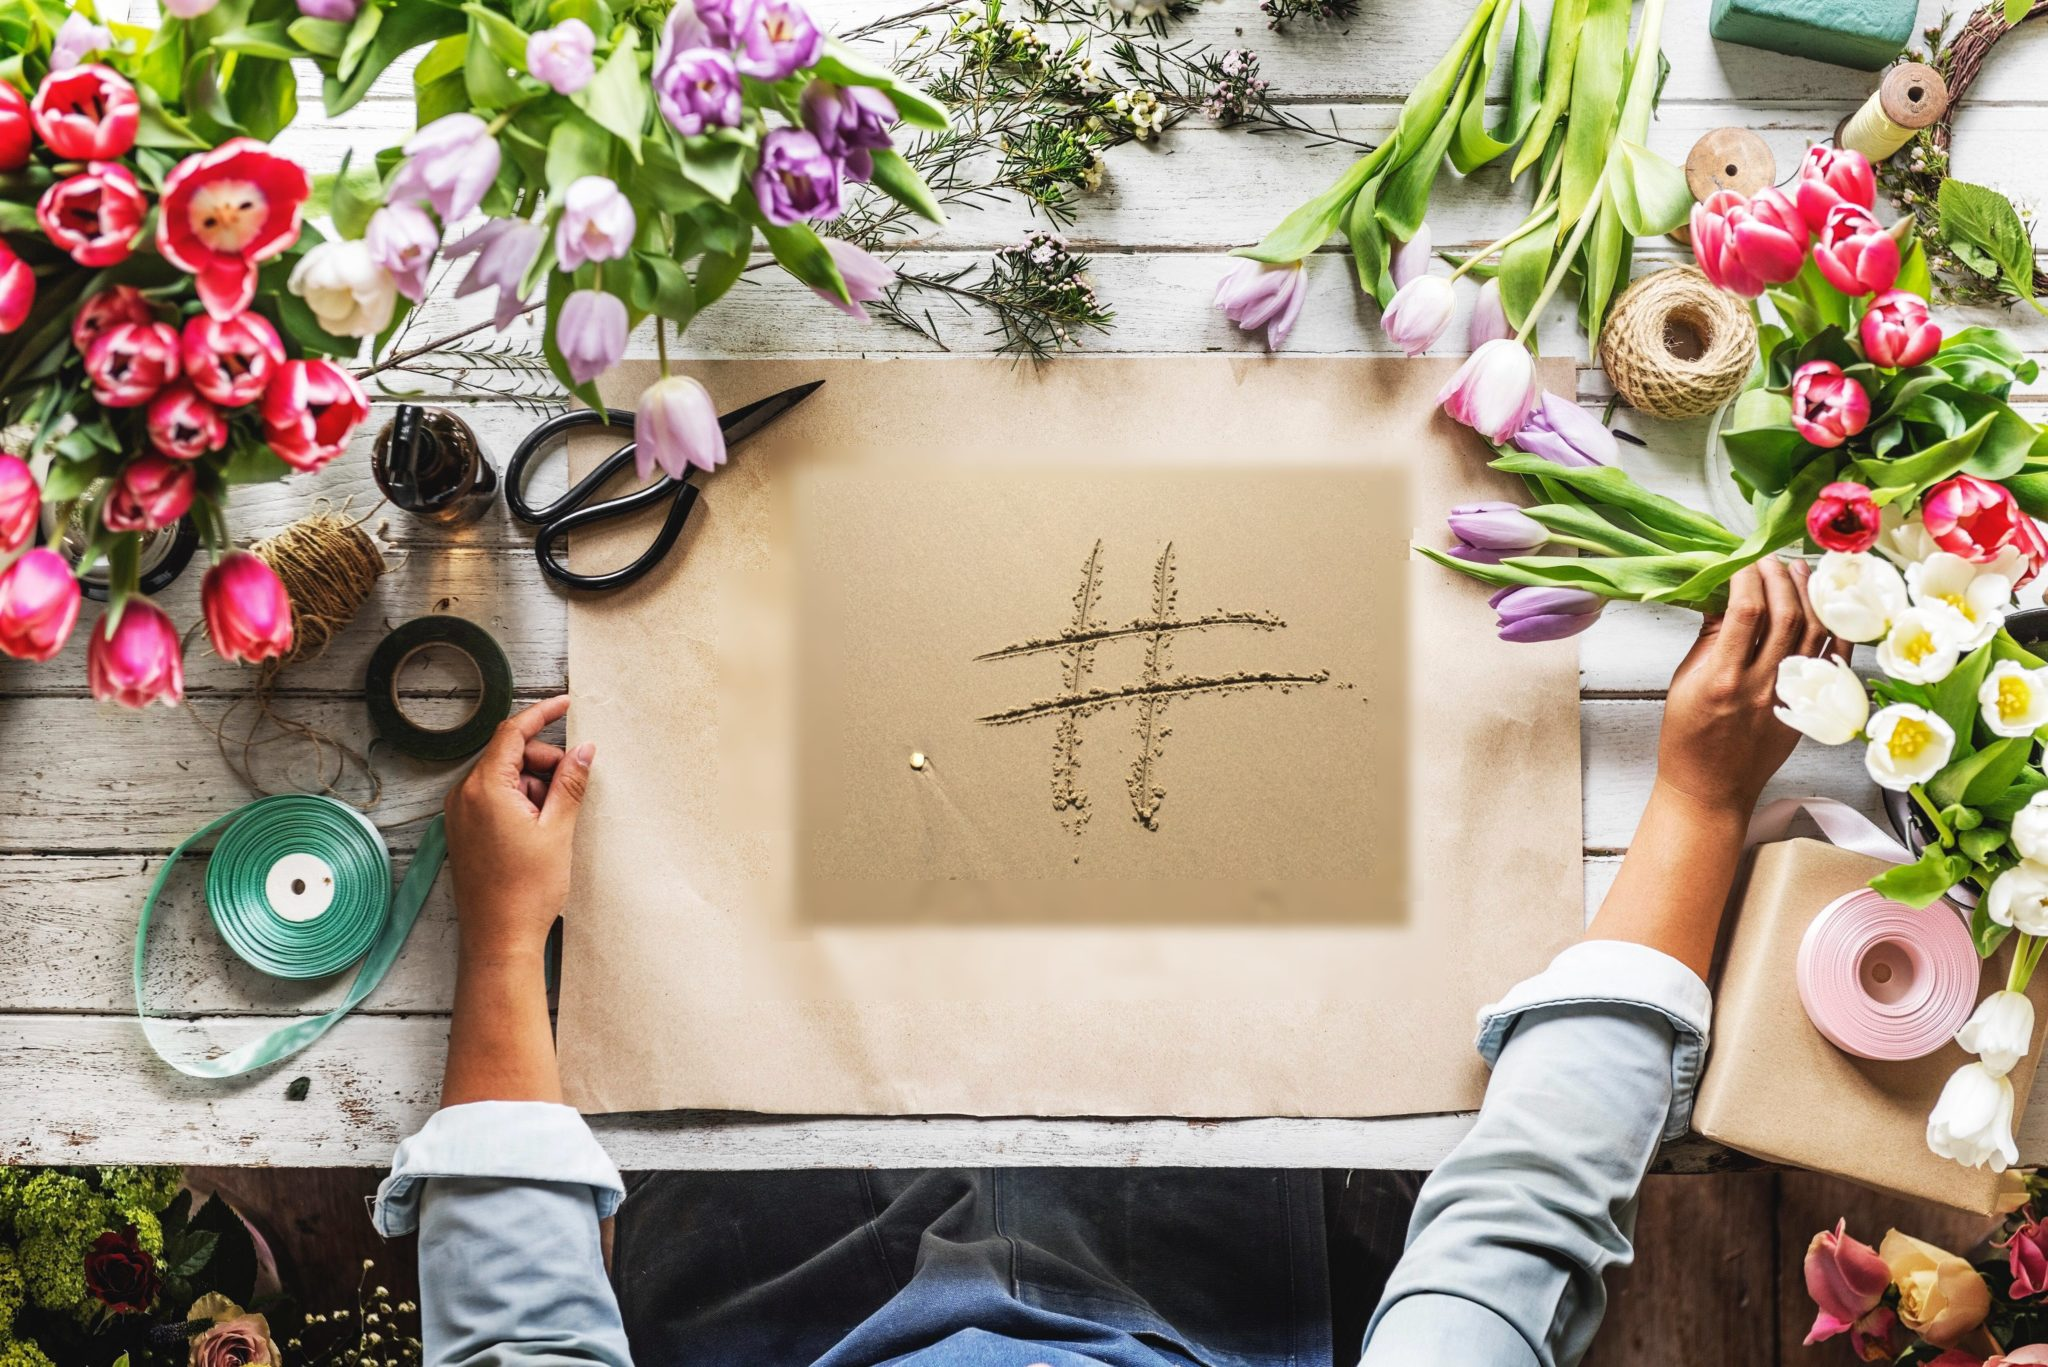 Should you use Hashtags in your #Blog Content Title?